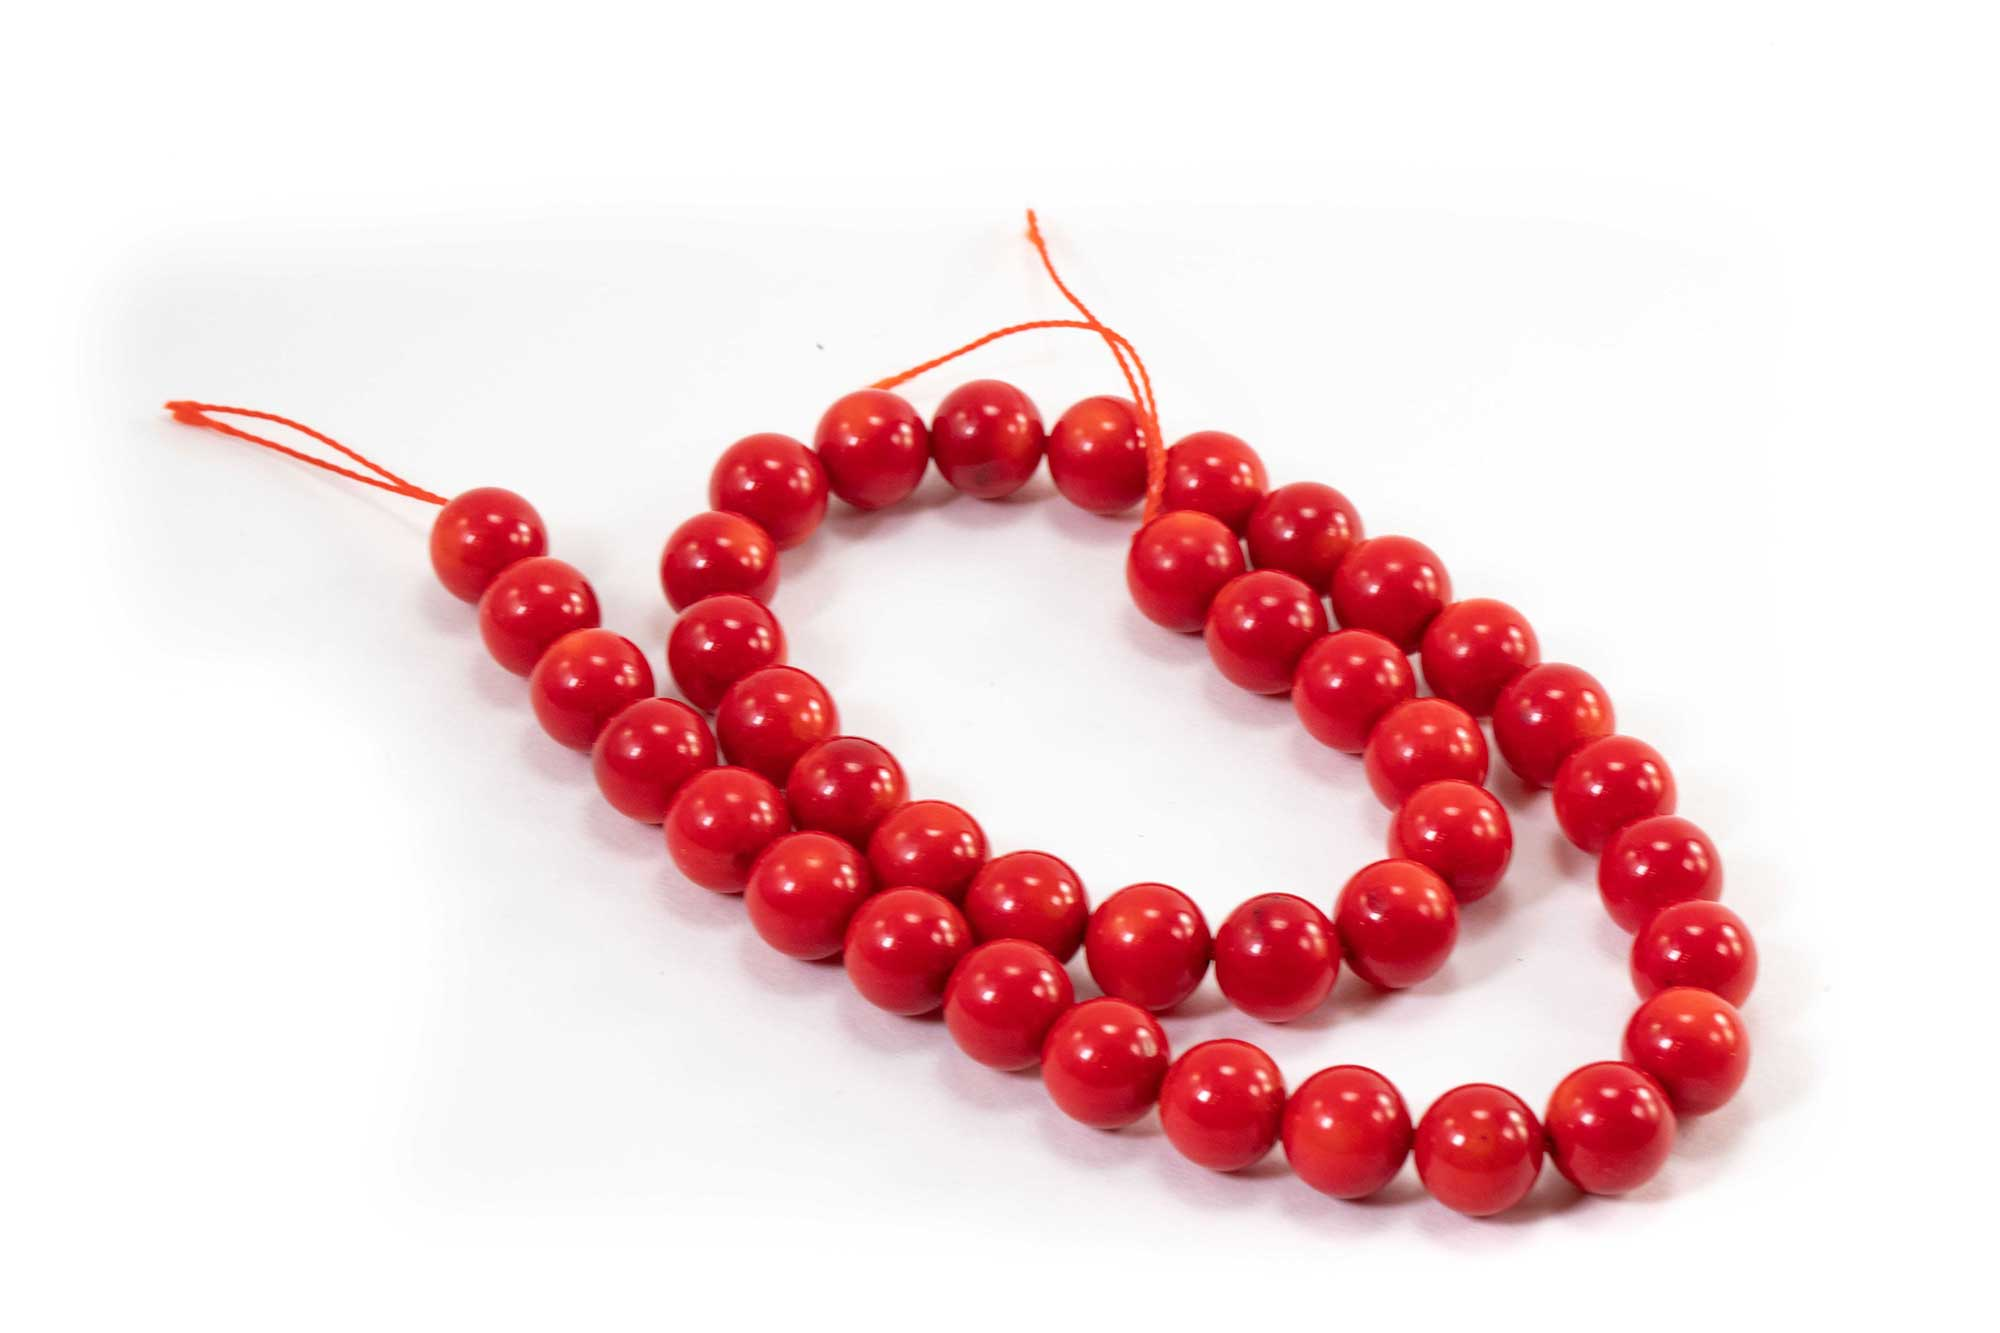 bec71a496a2e5 Red Coral Beads (10mm or 8mm)